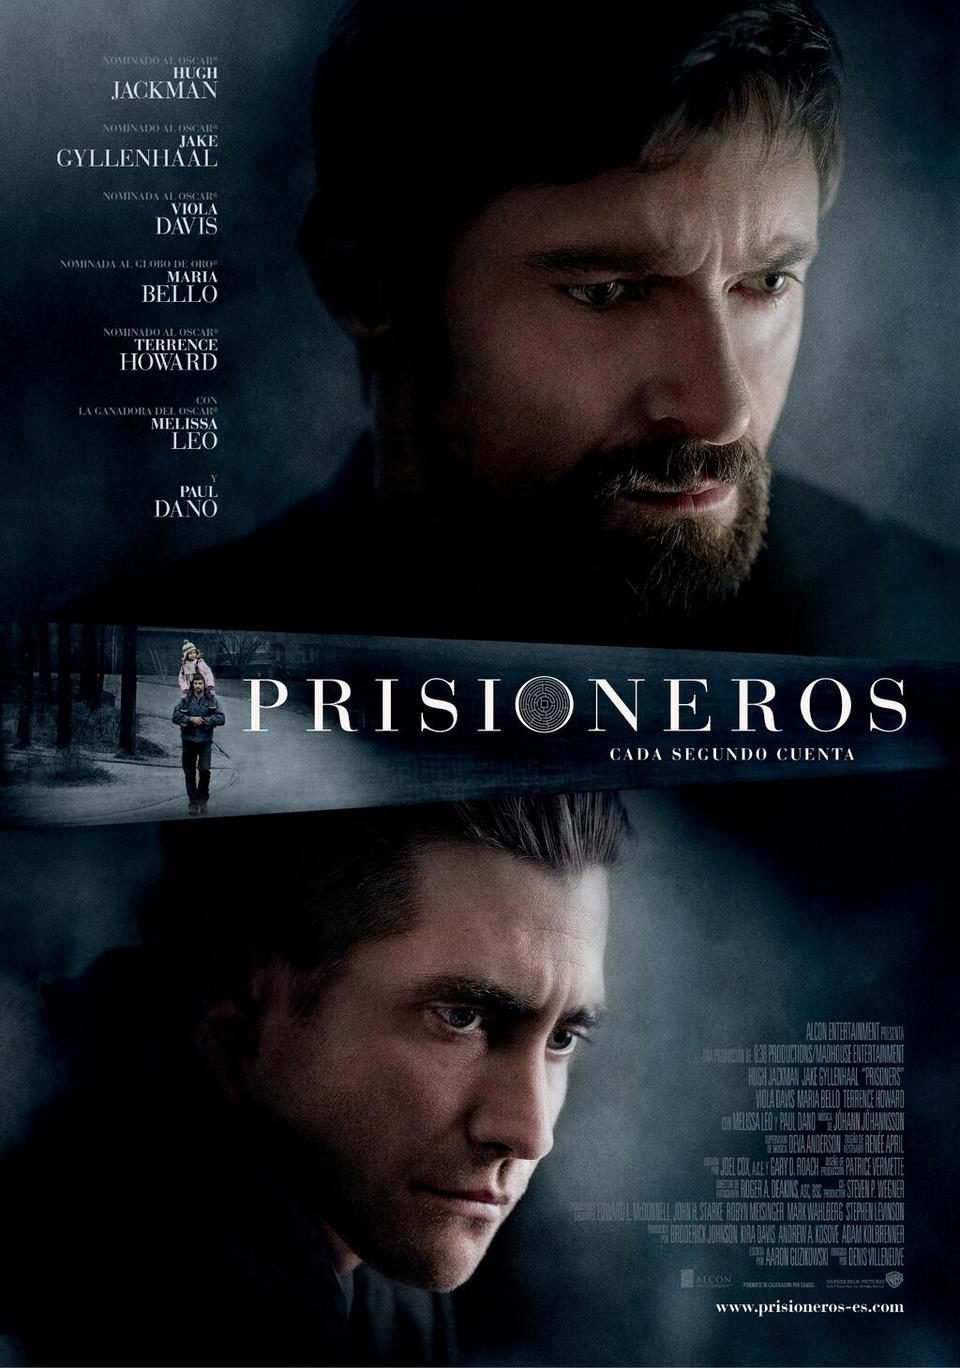 España poster for Prisoners